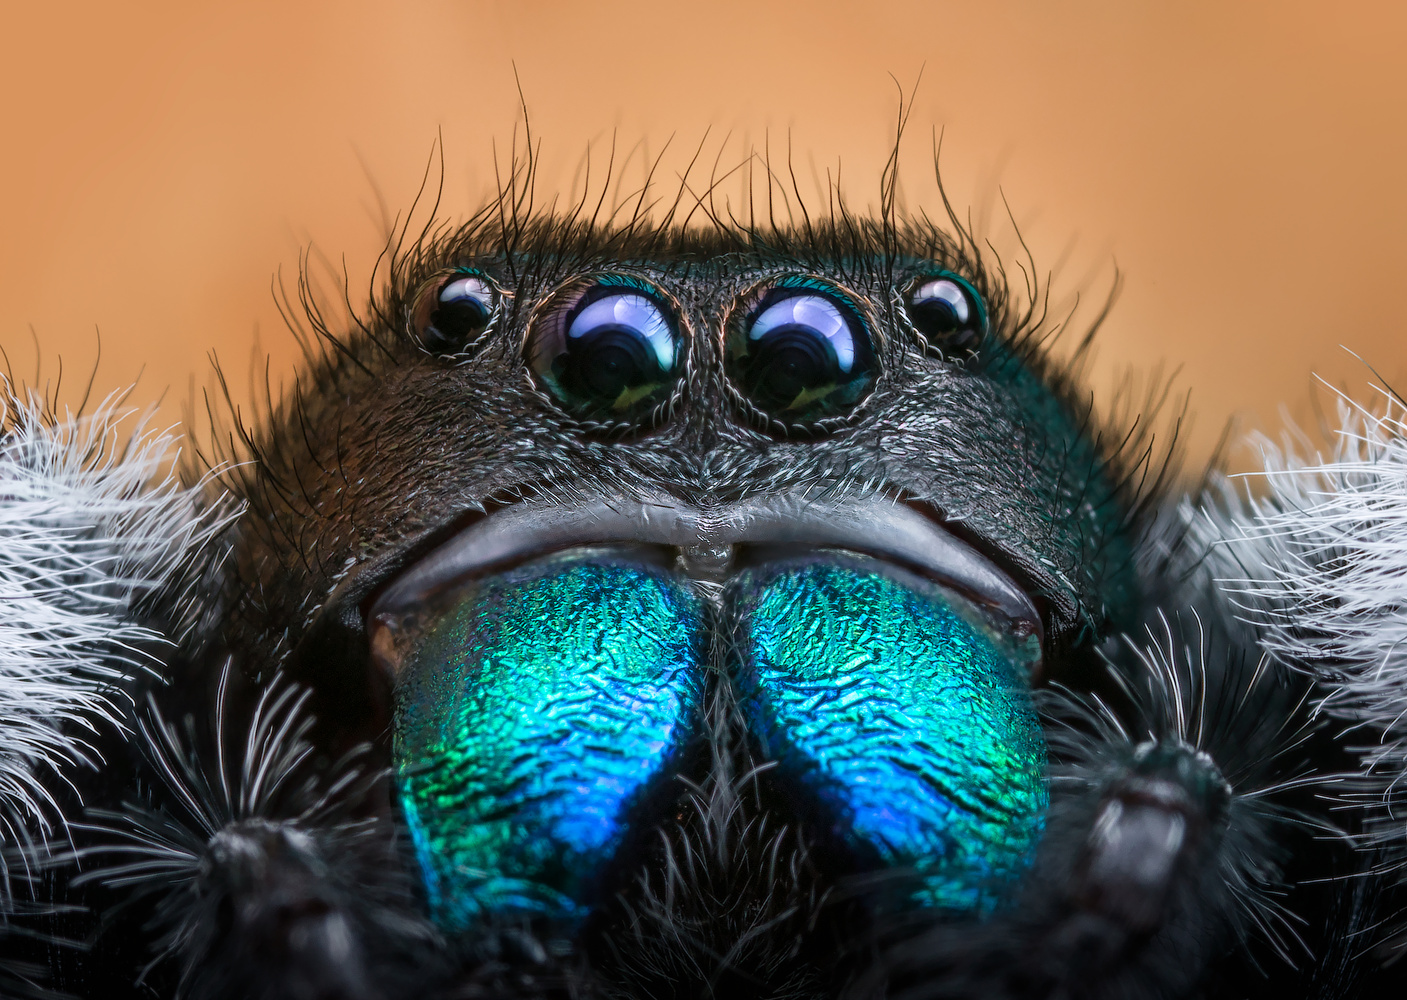 The Handsome Regal Spider by Liza Rock